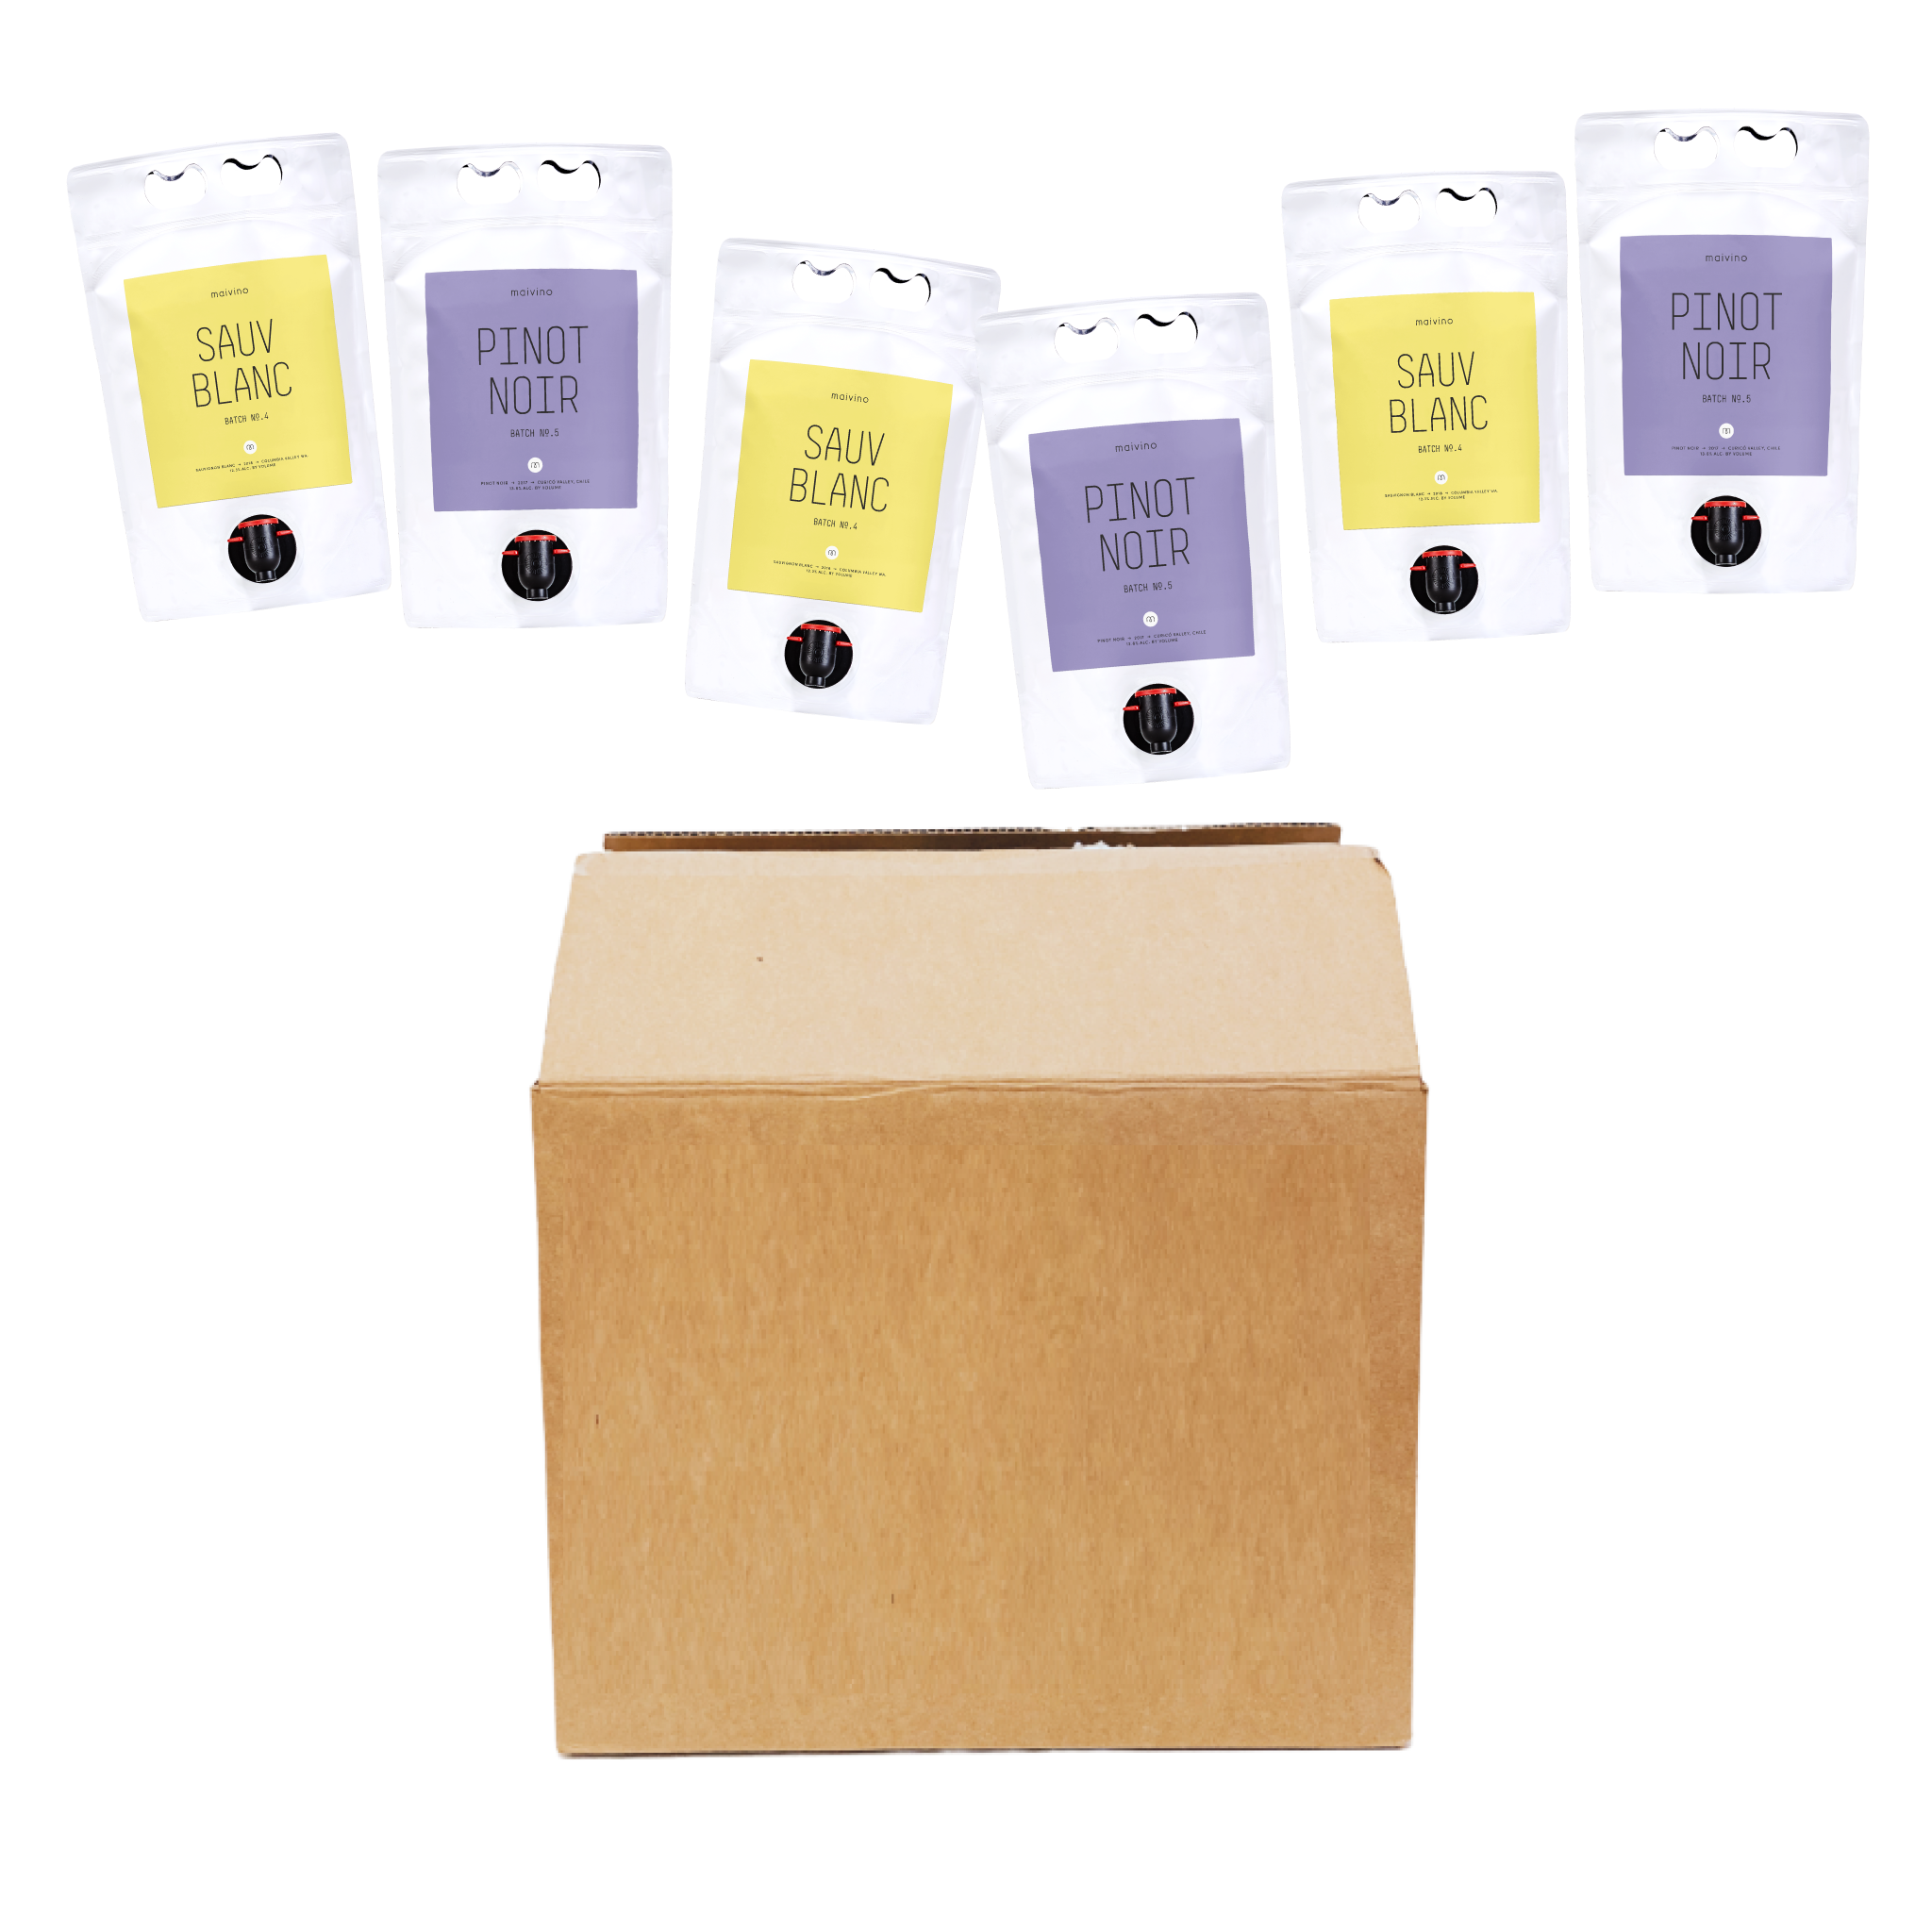 Mixed Six Pack, $139.00 per pack (6 pouches). Gift, gather and imbibe. This pack has 6 pouches, the equivalent of 12 bottles inside. The best part - it keeps fresh for 30 days after opening! @maivino.com